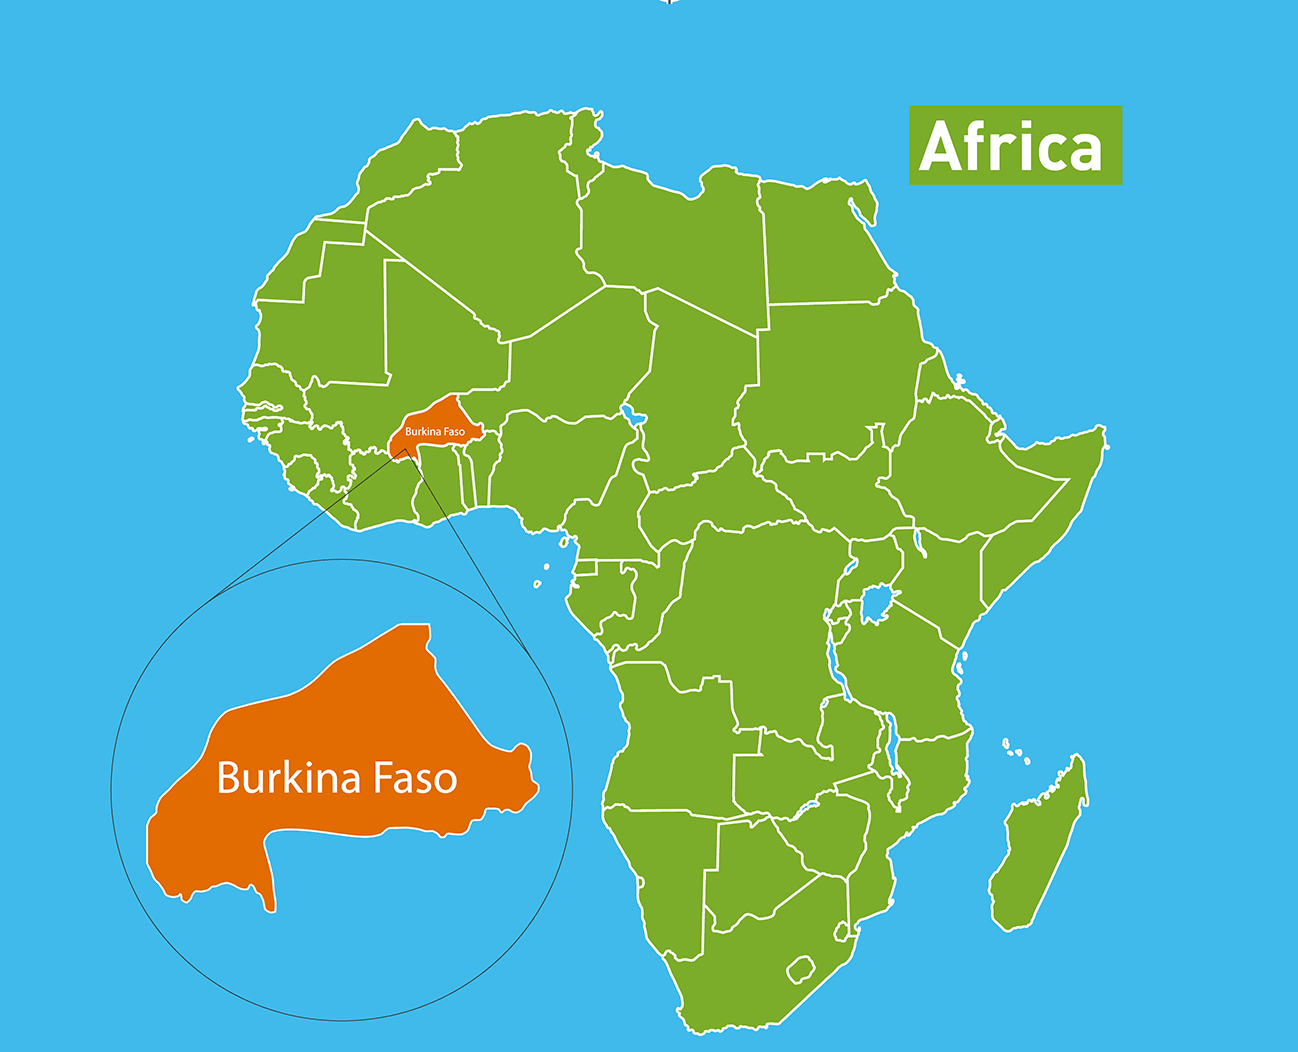 Burkina Faso location